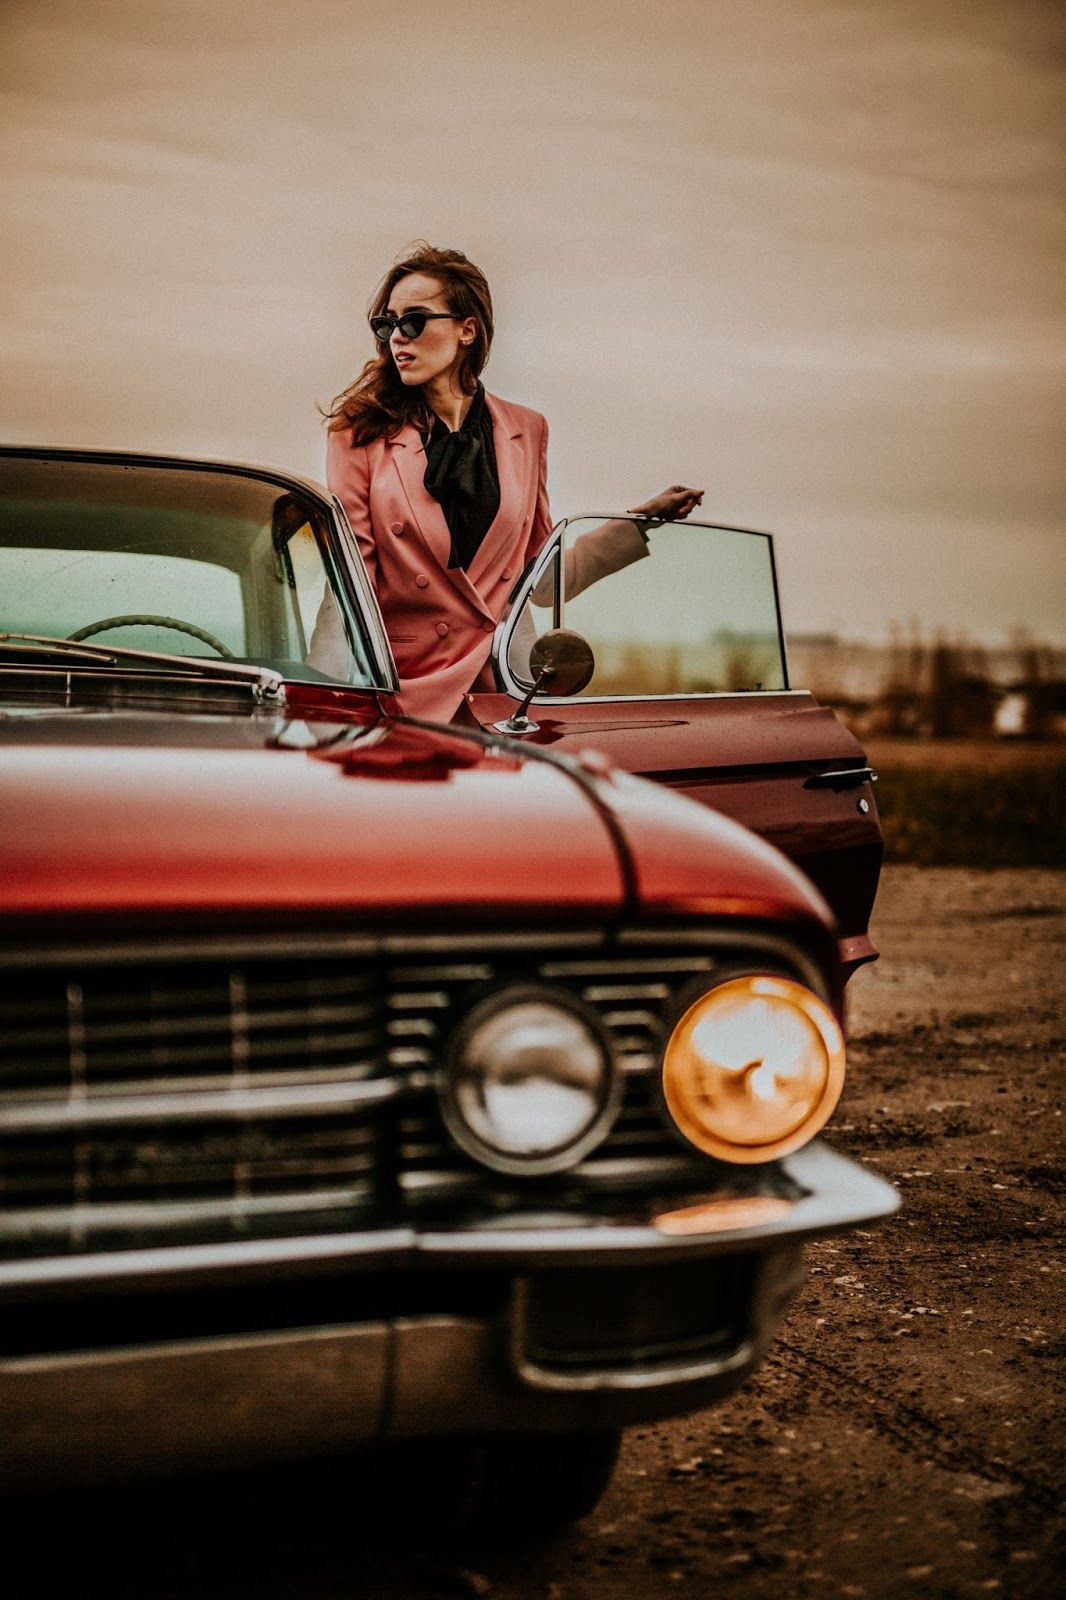 Vintage Vibes Giveaway In 2020 Vintage Photoshoot Photography Poses New Car Picture